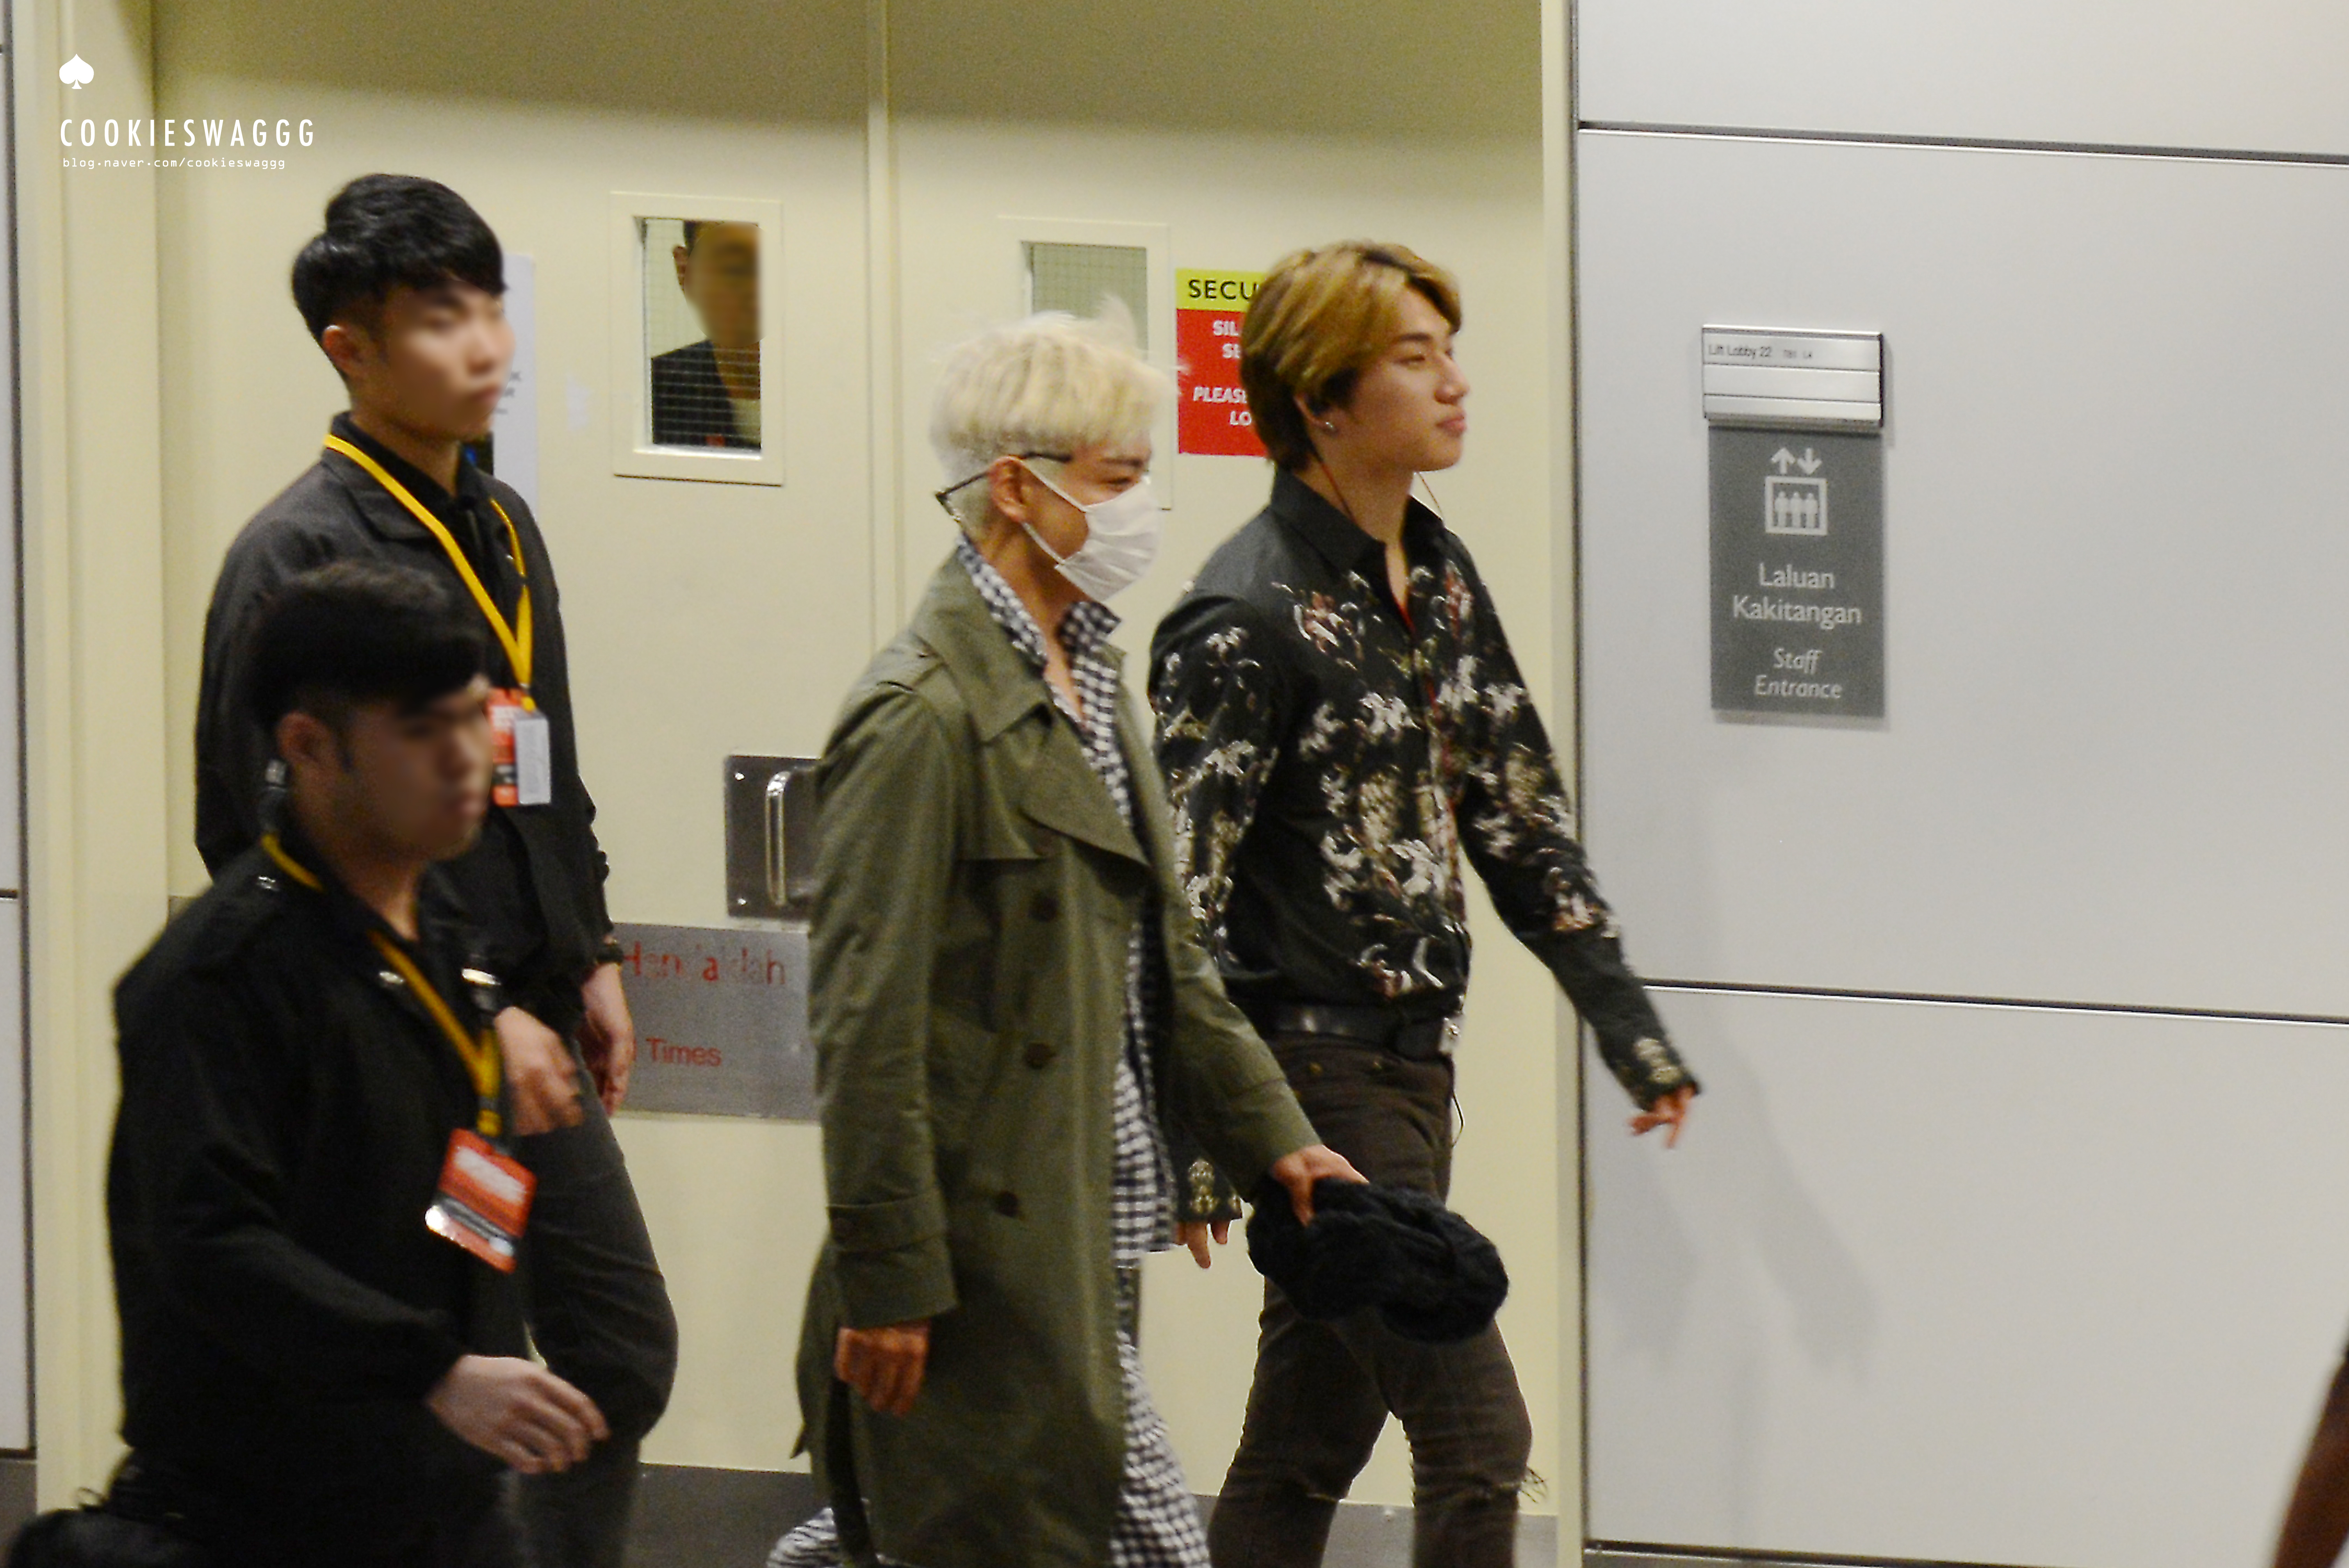 Big Bang - Malaysia Airport - 25jul2015 - cookieswaggg - 18.jpg